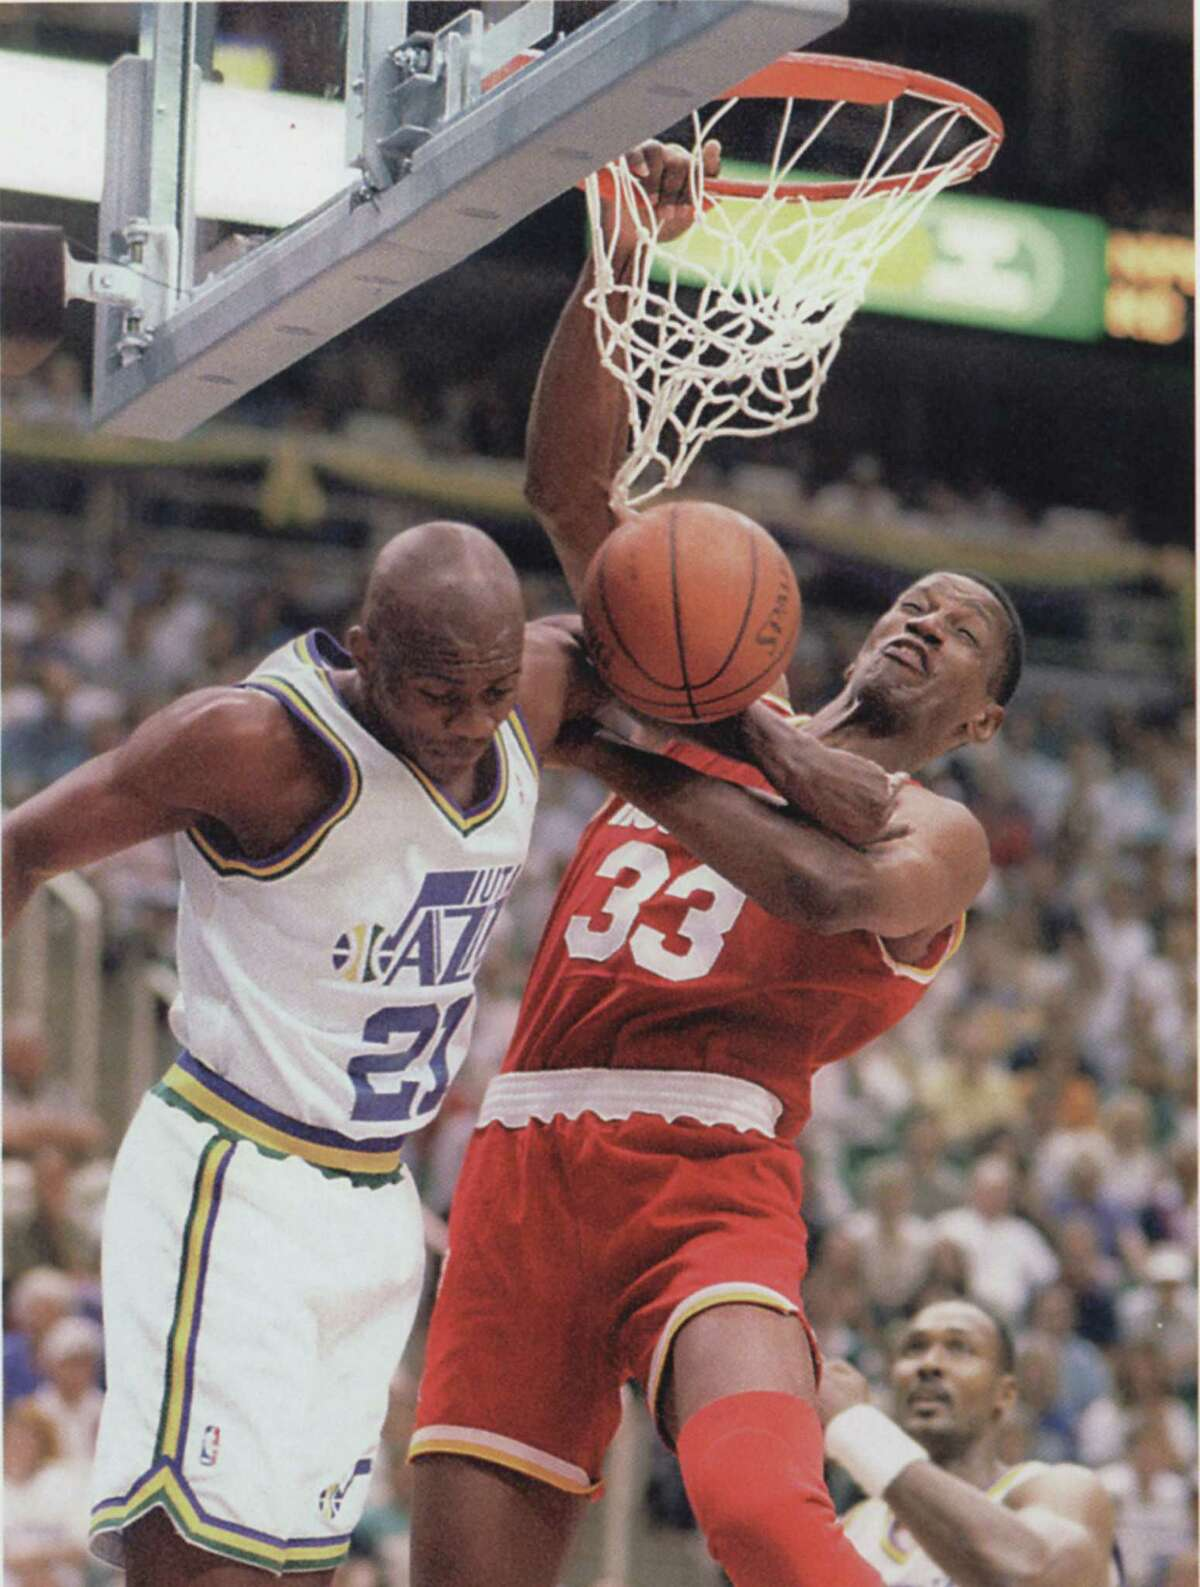 1994 Western Conference finals: Rockets 4, Jazz 1 The second-seeded Rockets blitzed the fifth-seed Jazz, winning the first two games at home before losing Game 3 in Utah. The Rockets went on to finish the Jazz at home in five games en route to their first NBA title.